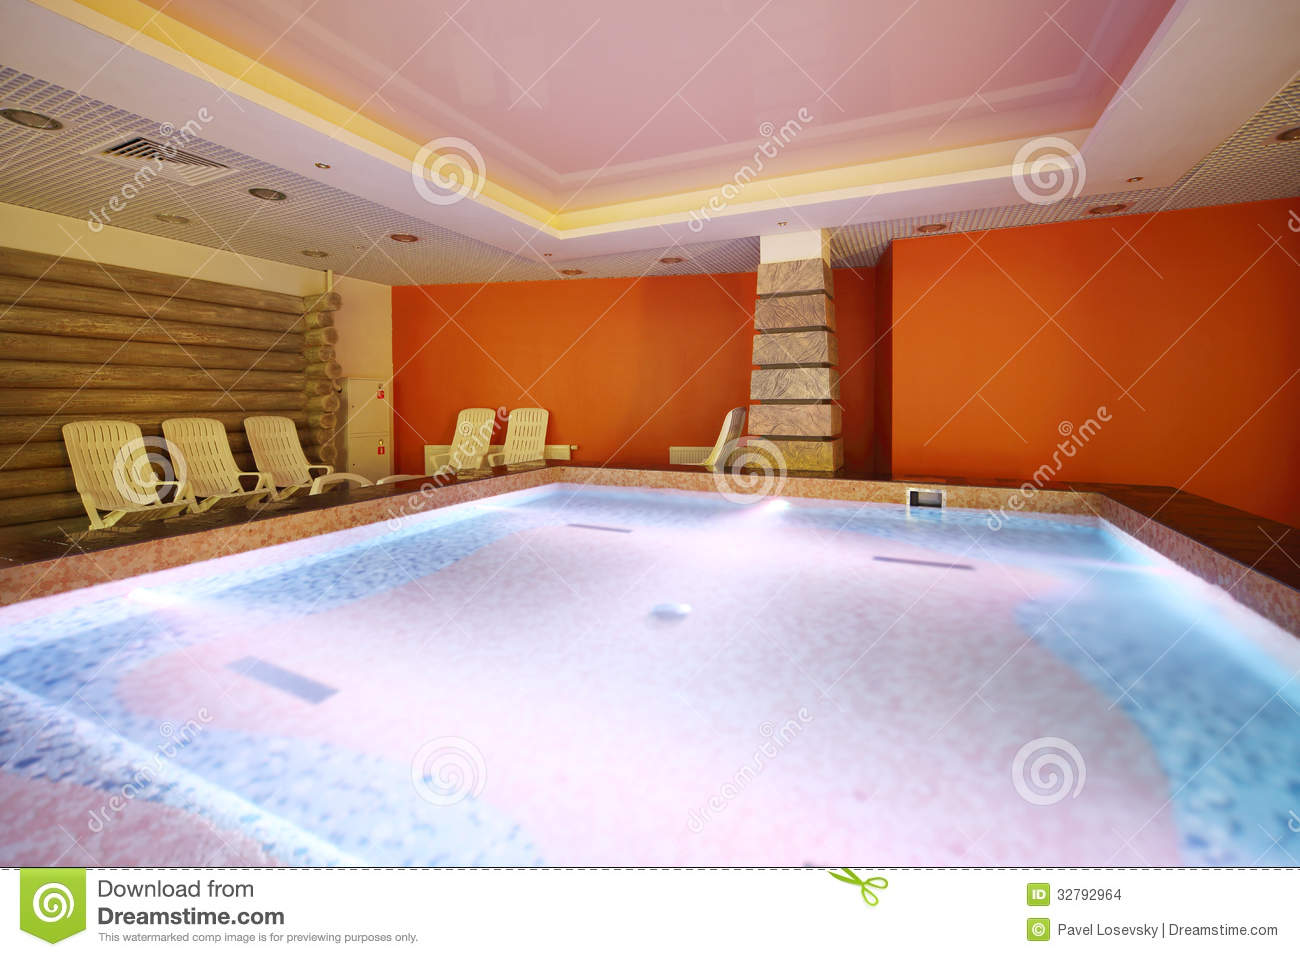 Sauna 24 Sauna Center In Waterpark Caribia Editorial Stock Image Image Of